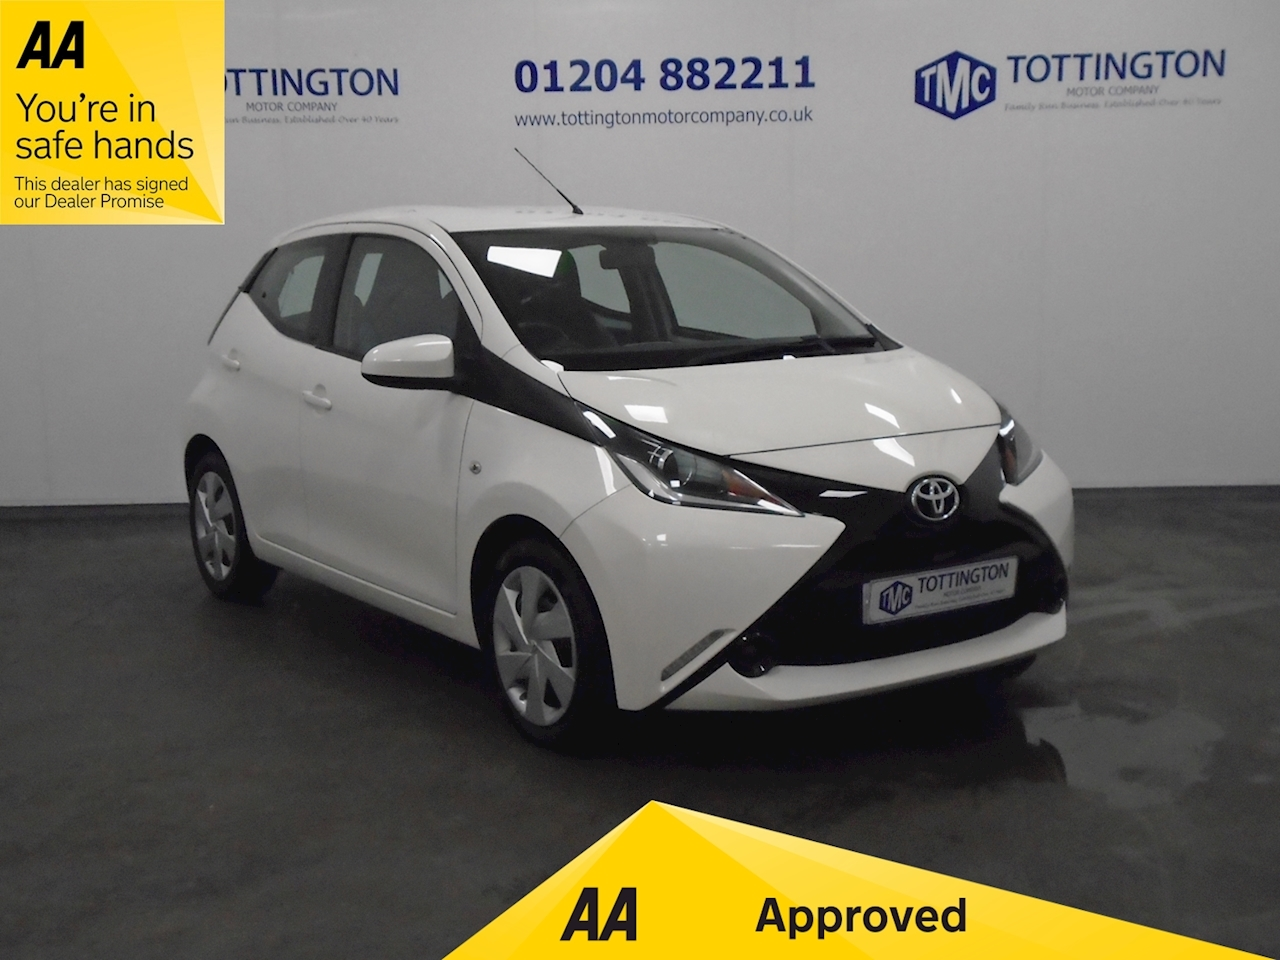 AYGO x-play Hatchback 1.0 Manual Petrol